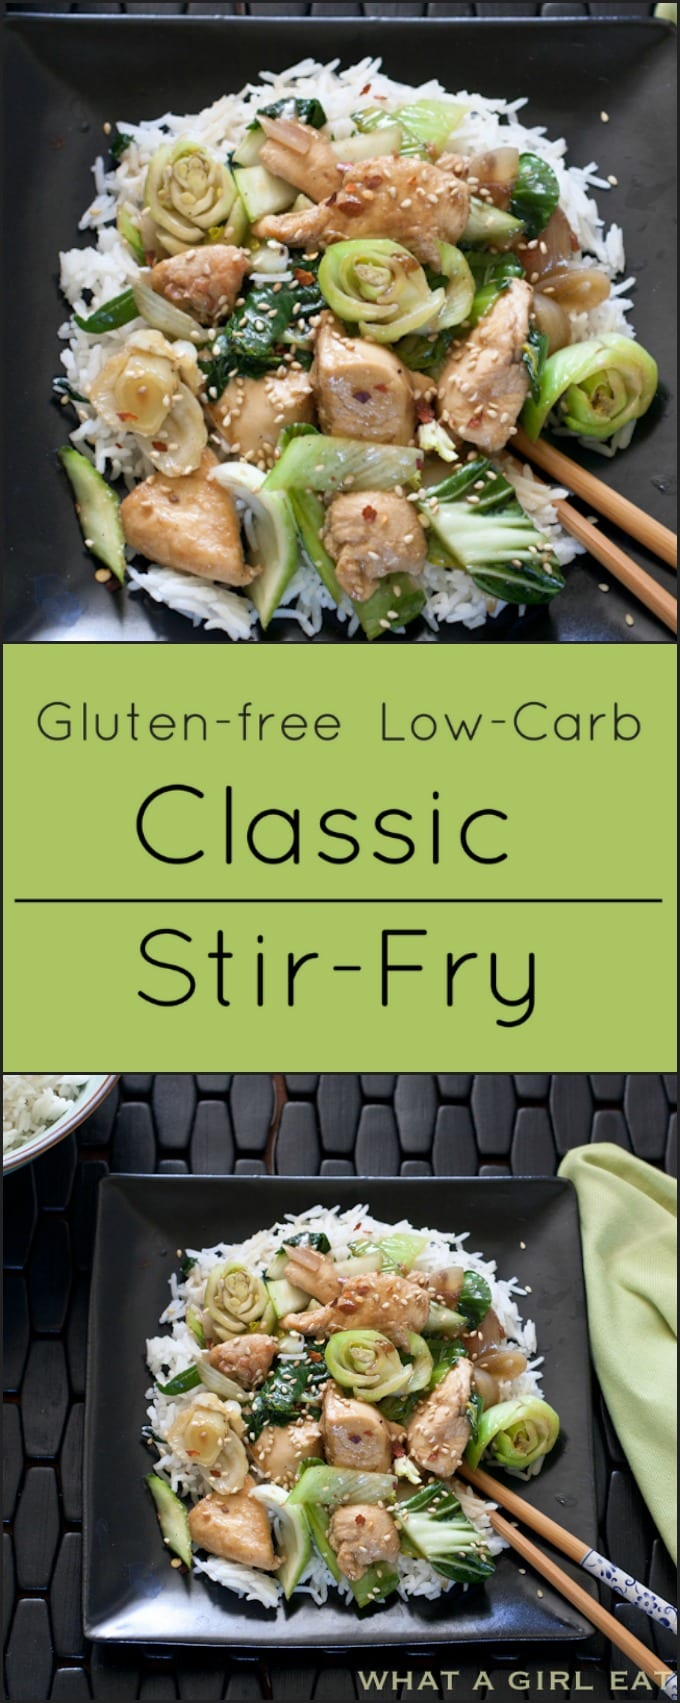 Classic Chinese Stir-fry with Chicken and baby Bok Choy is gluten free and low carb.